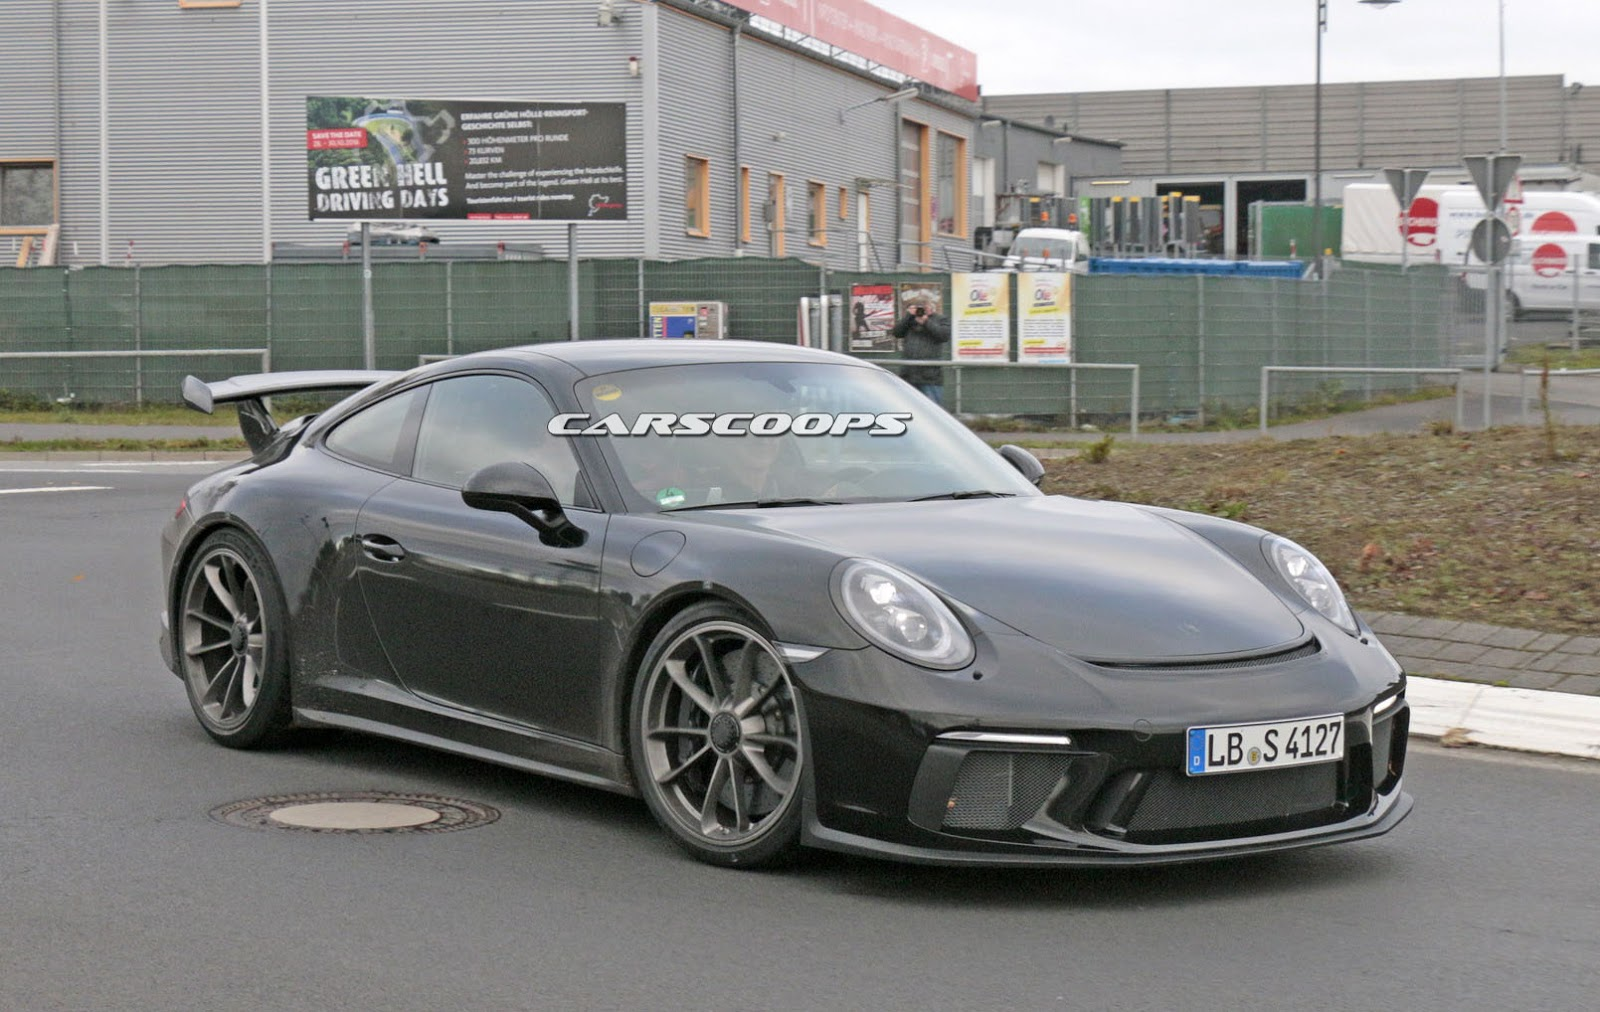 facelifted 2017 porsche 991 gt3 spied completely free of camo carscoops. Black Bedroom Furniture Sets. Home Design Ideas